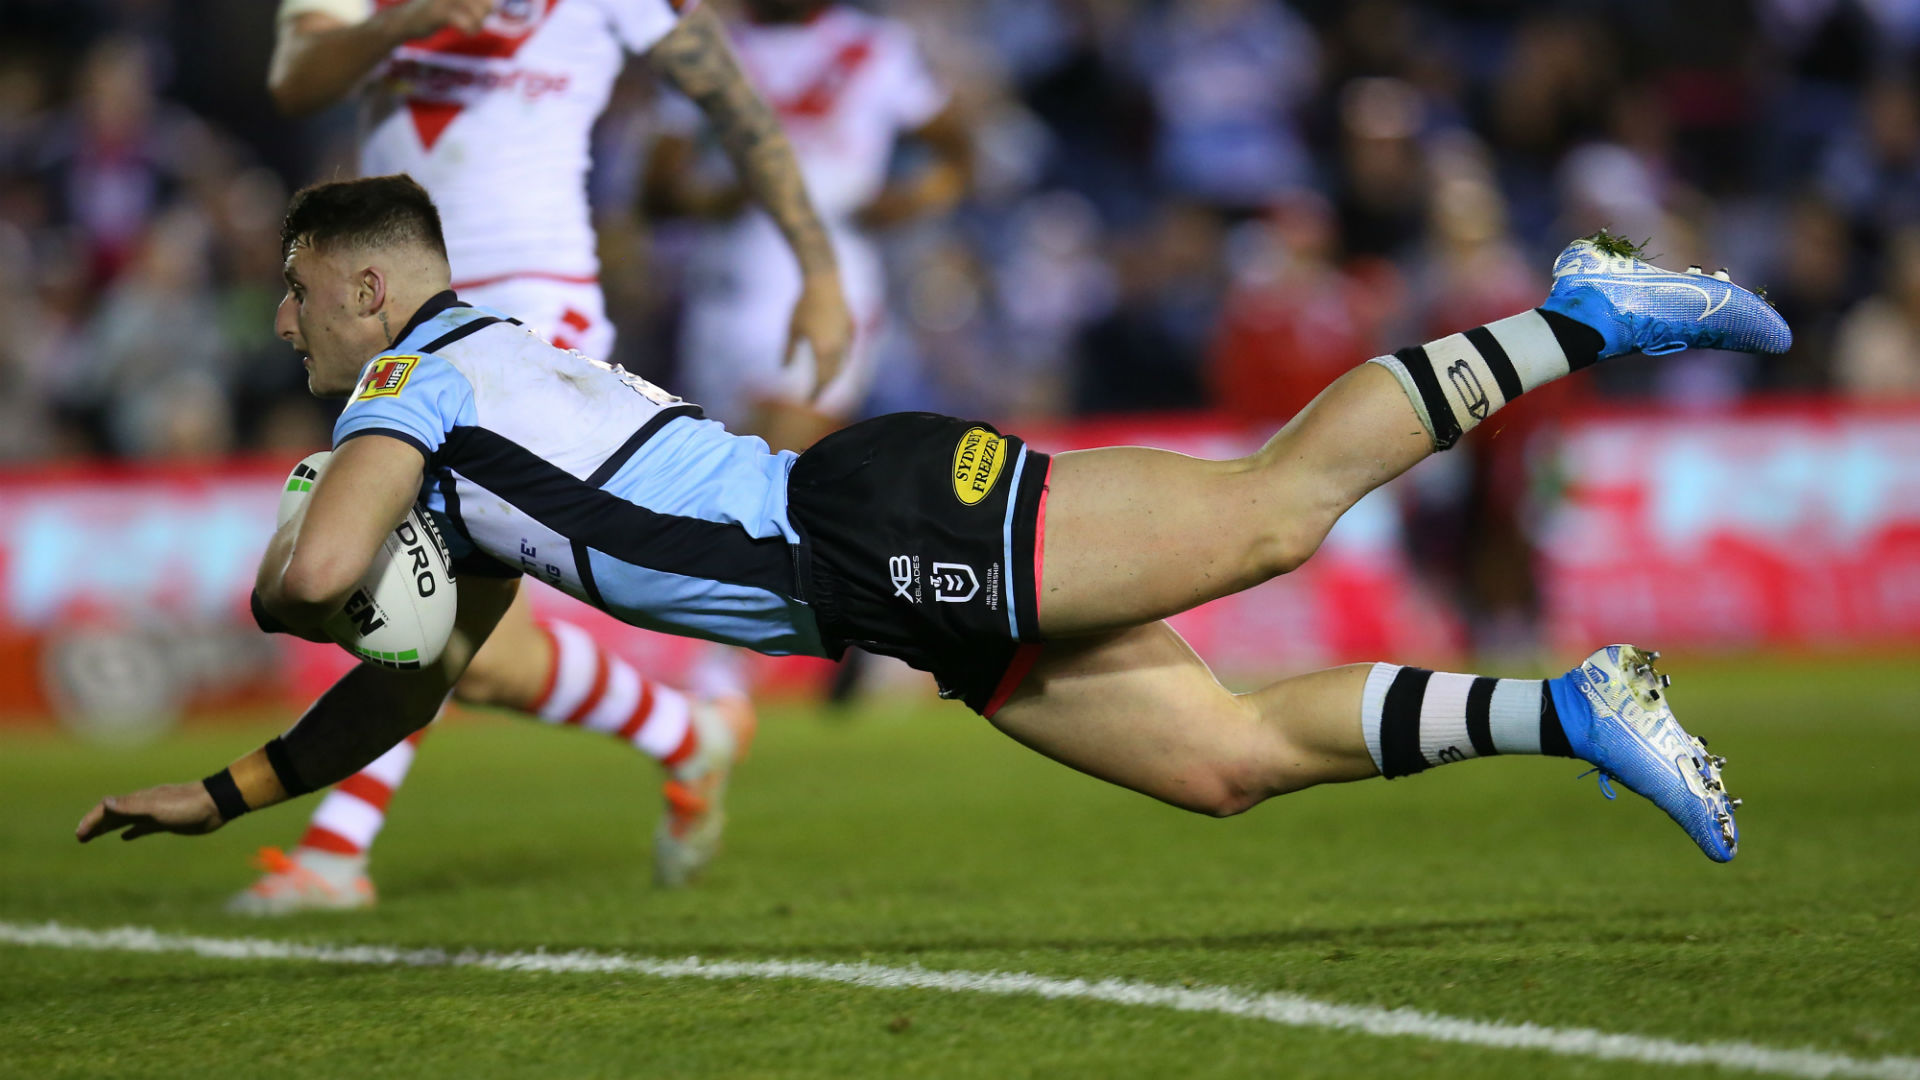 Xerri late show lifts Cronulla Sharks, Sydney Roosters run riot